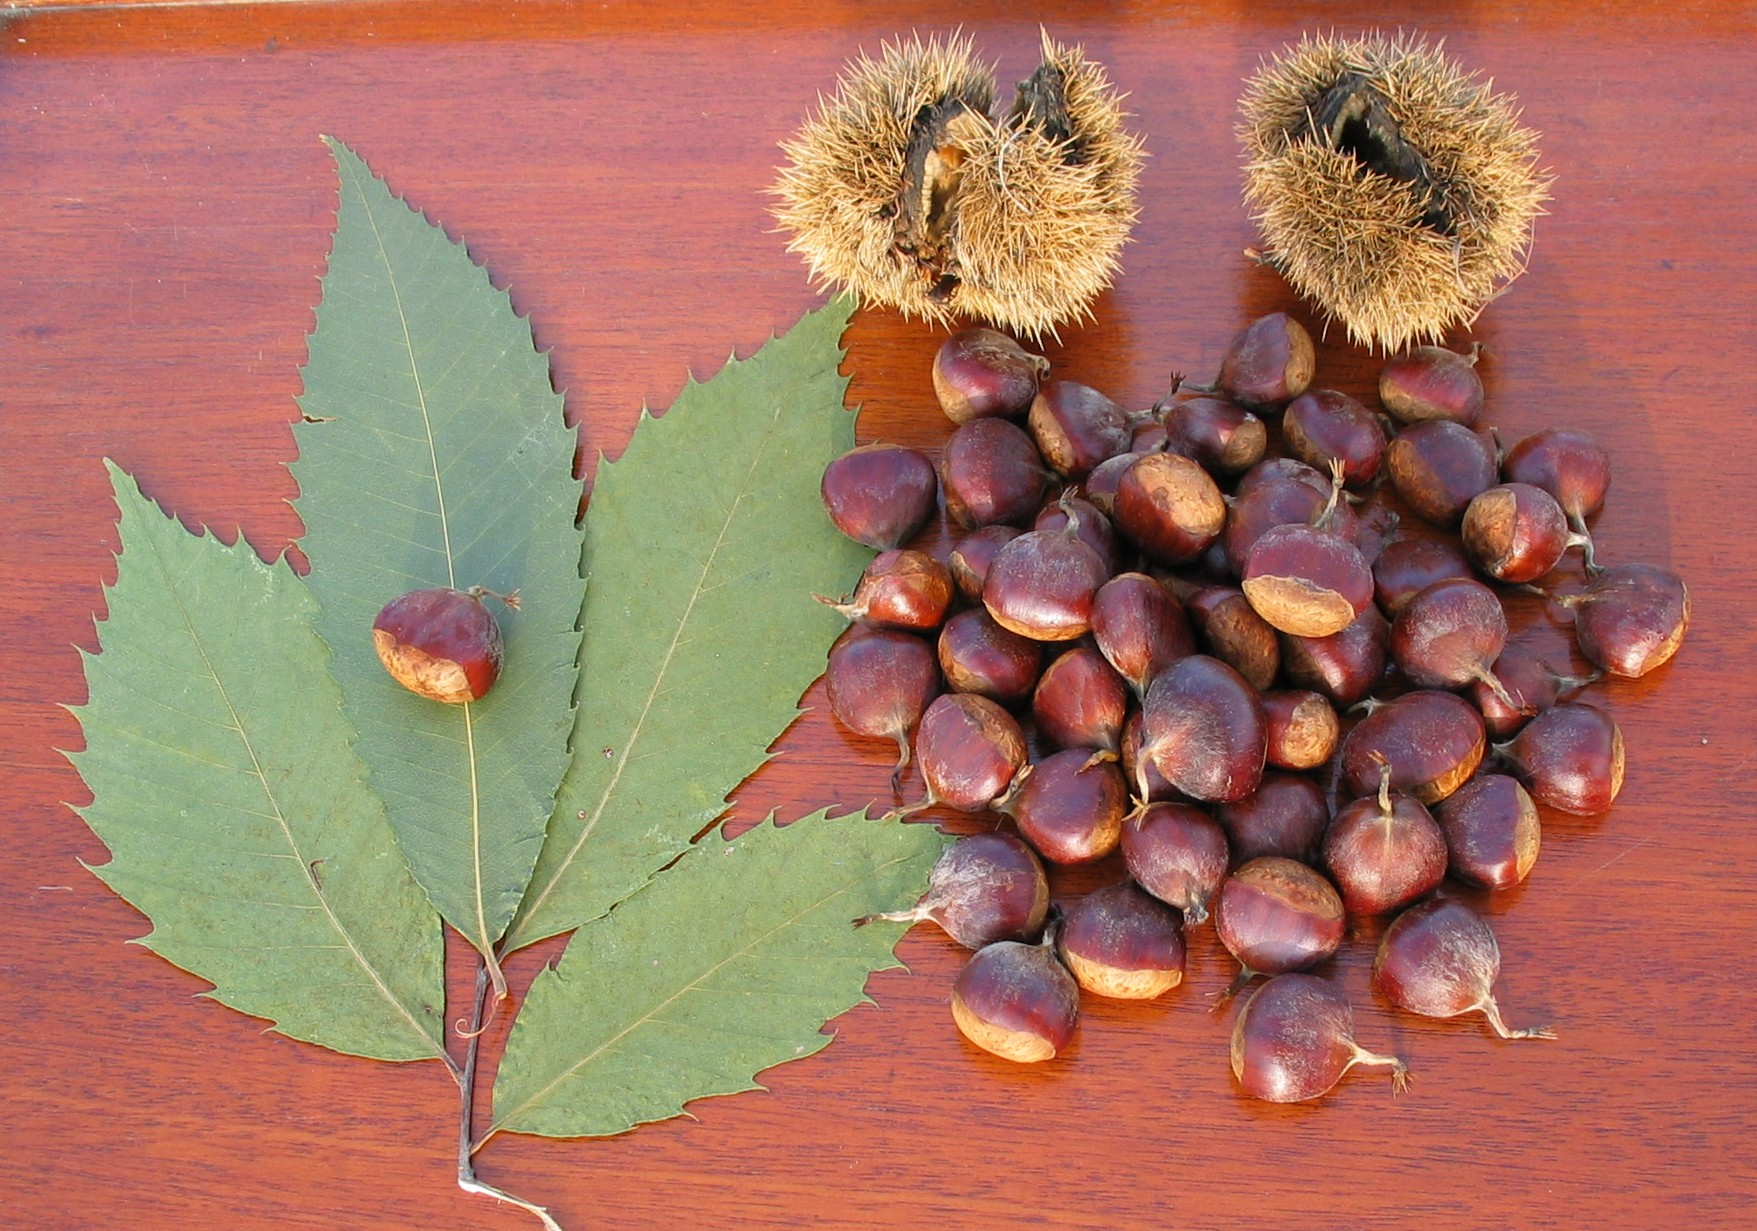 American chestnut. Very similar to store bought chestnuts.